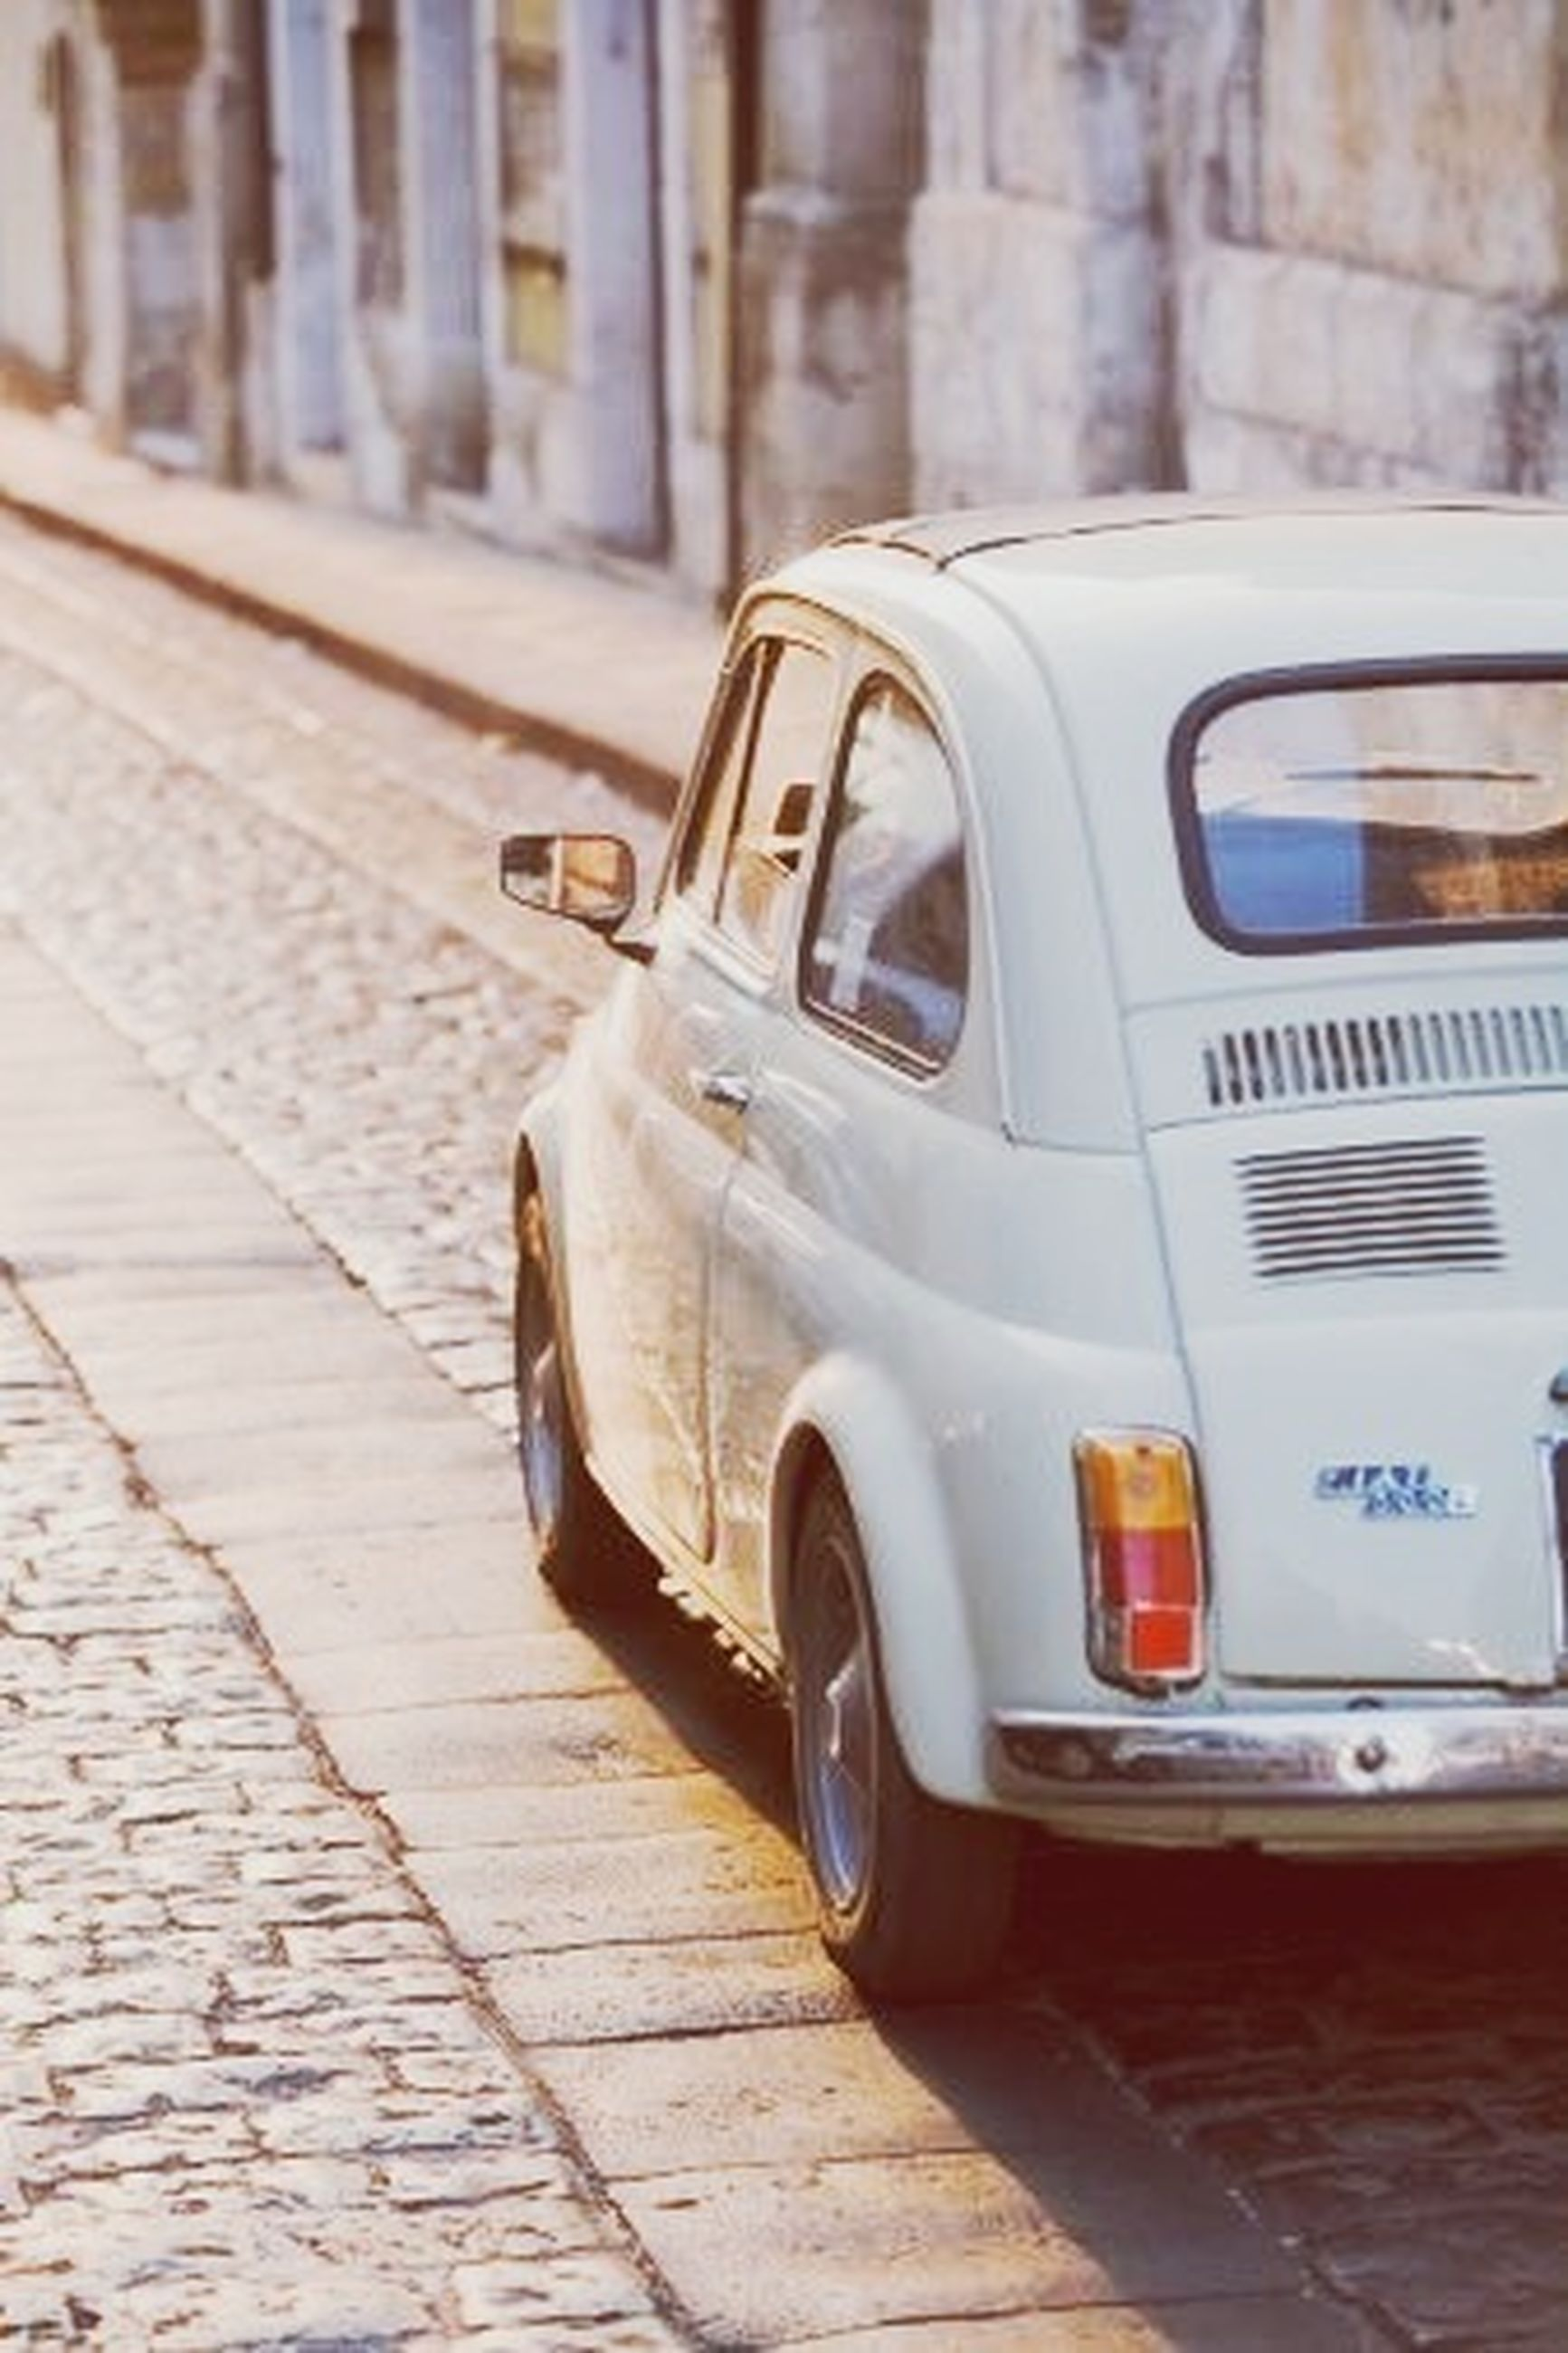 transportation, mode of transport, close-up, car, old-fashioned, land vehicle, day, retro styled, no people, old, metal, outdoors, wood - material, focus on foreground, street, stationary, still life, sunlight, table, travel